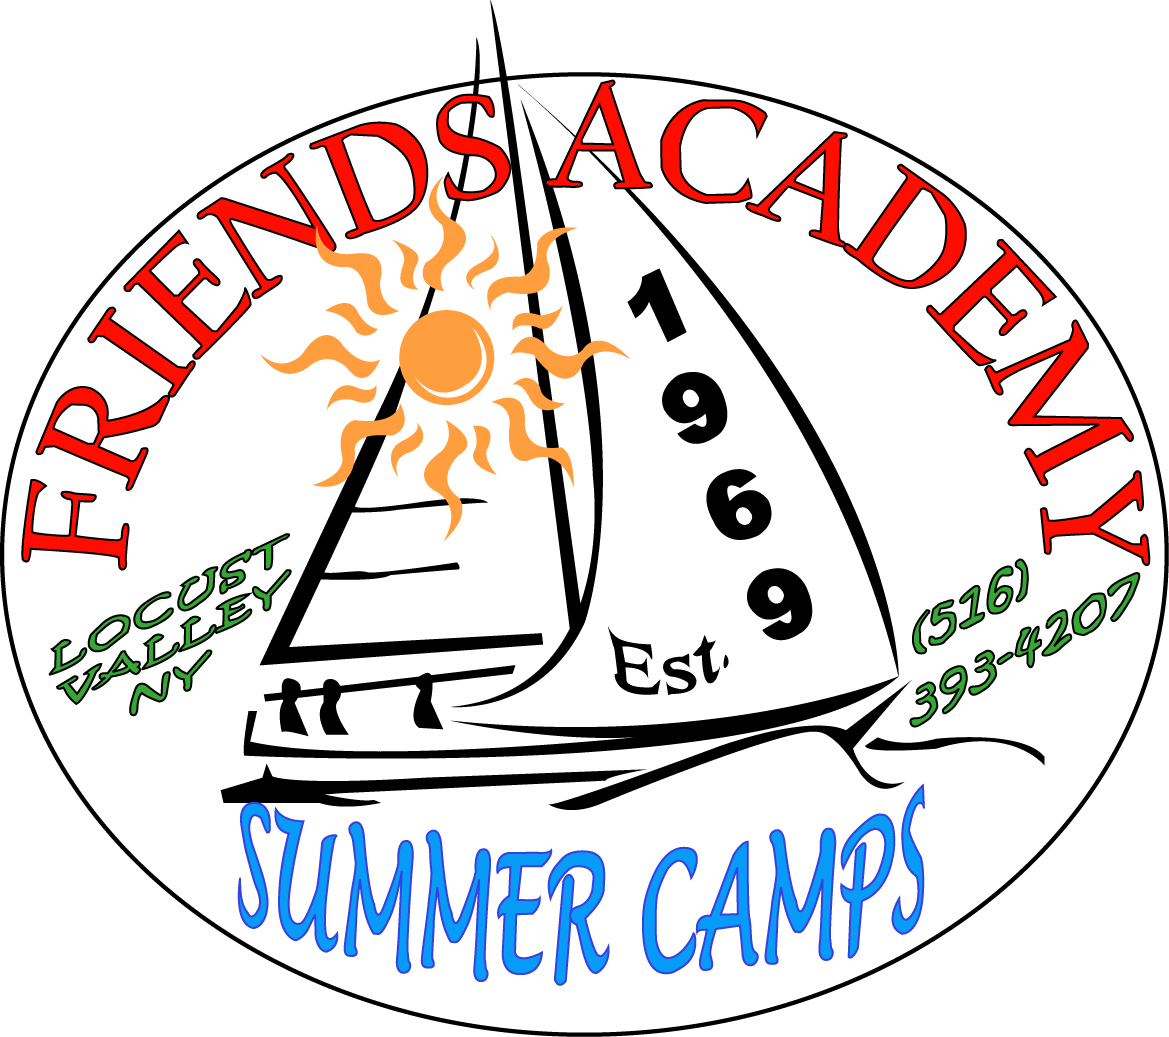 Friends Academy Summer Camp